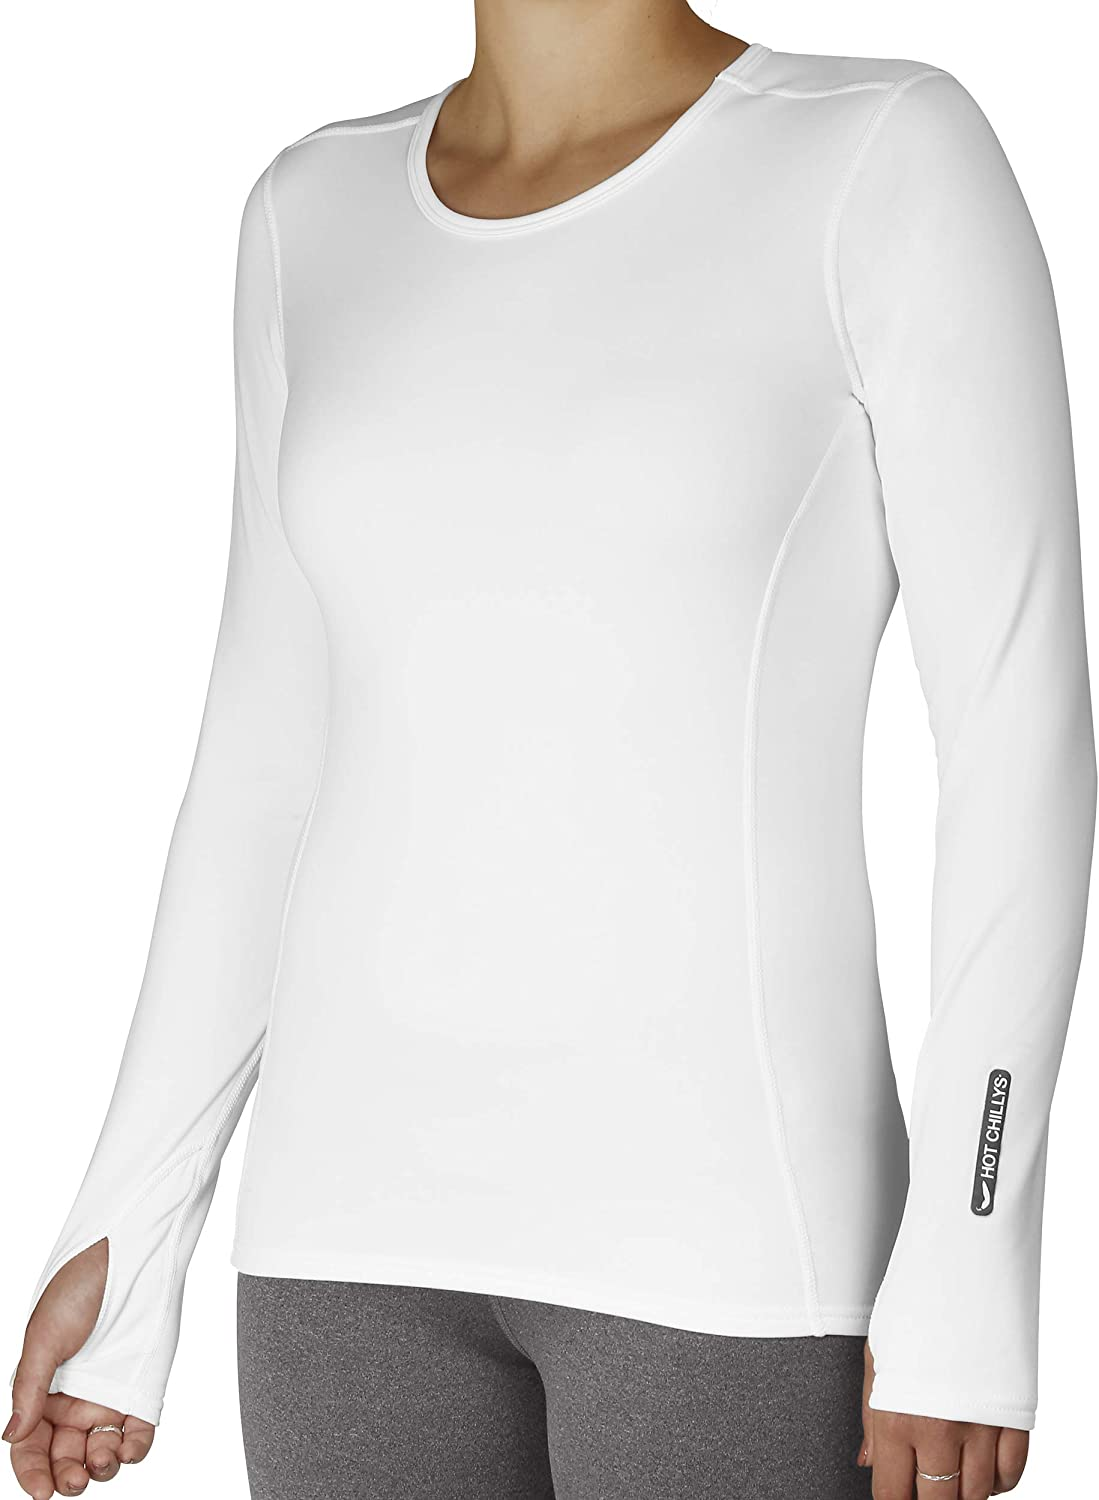 Hot Chillys Womens Micro-Elite Crewneck Base Layer Top